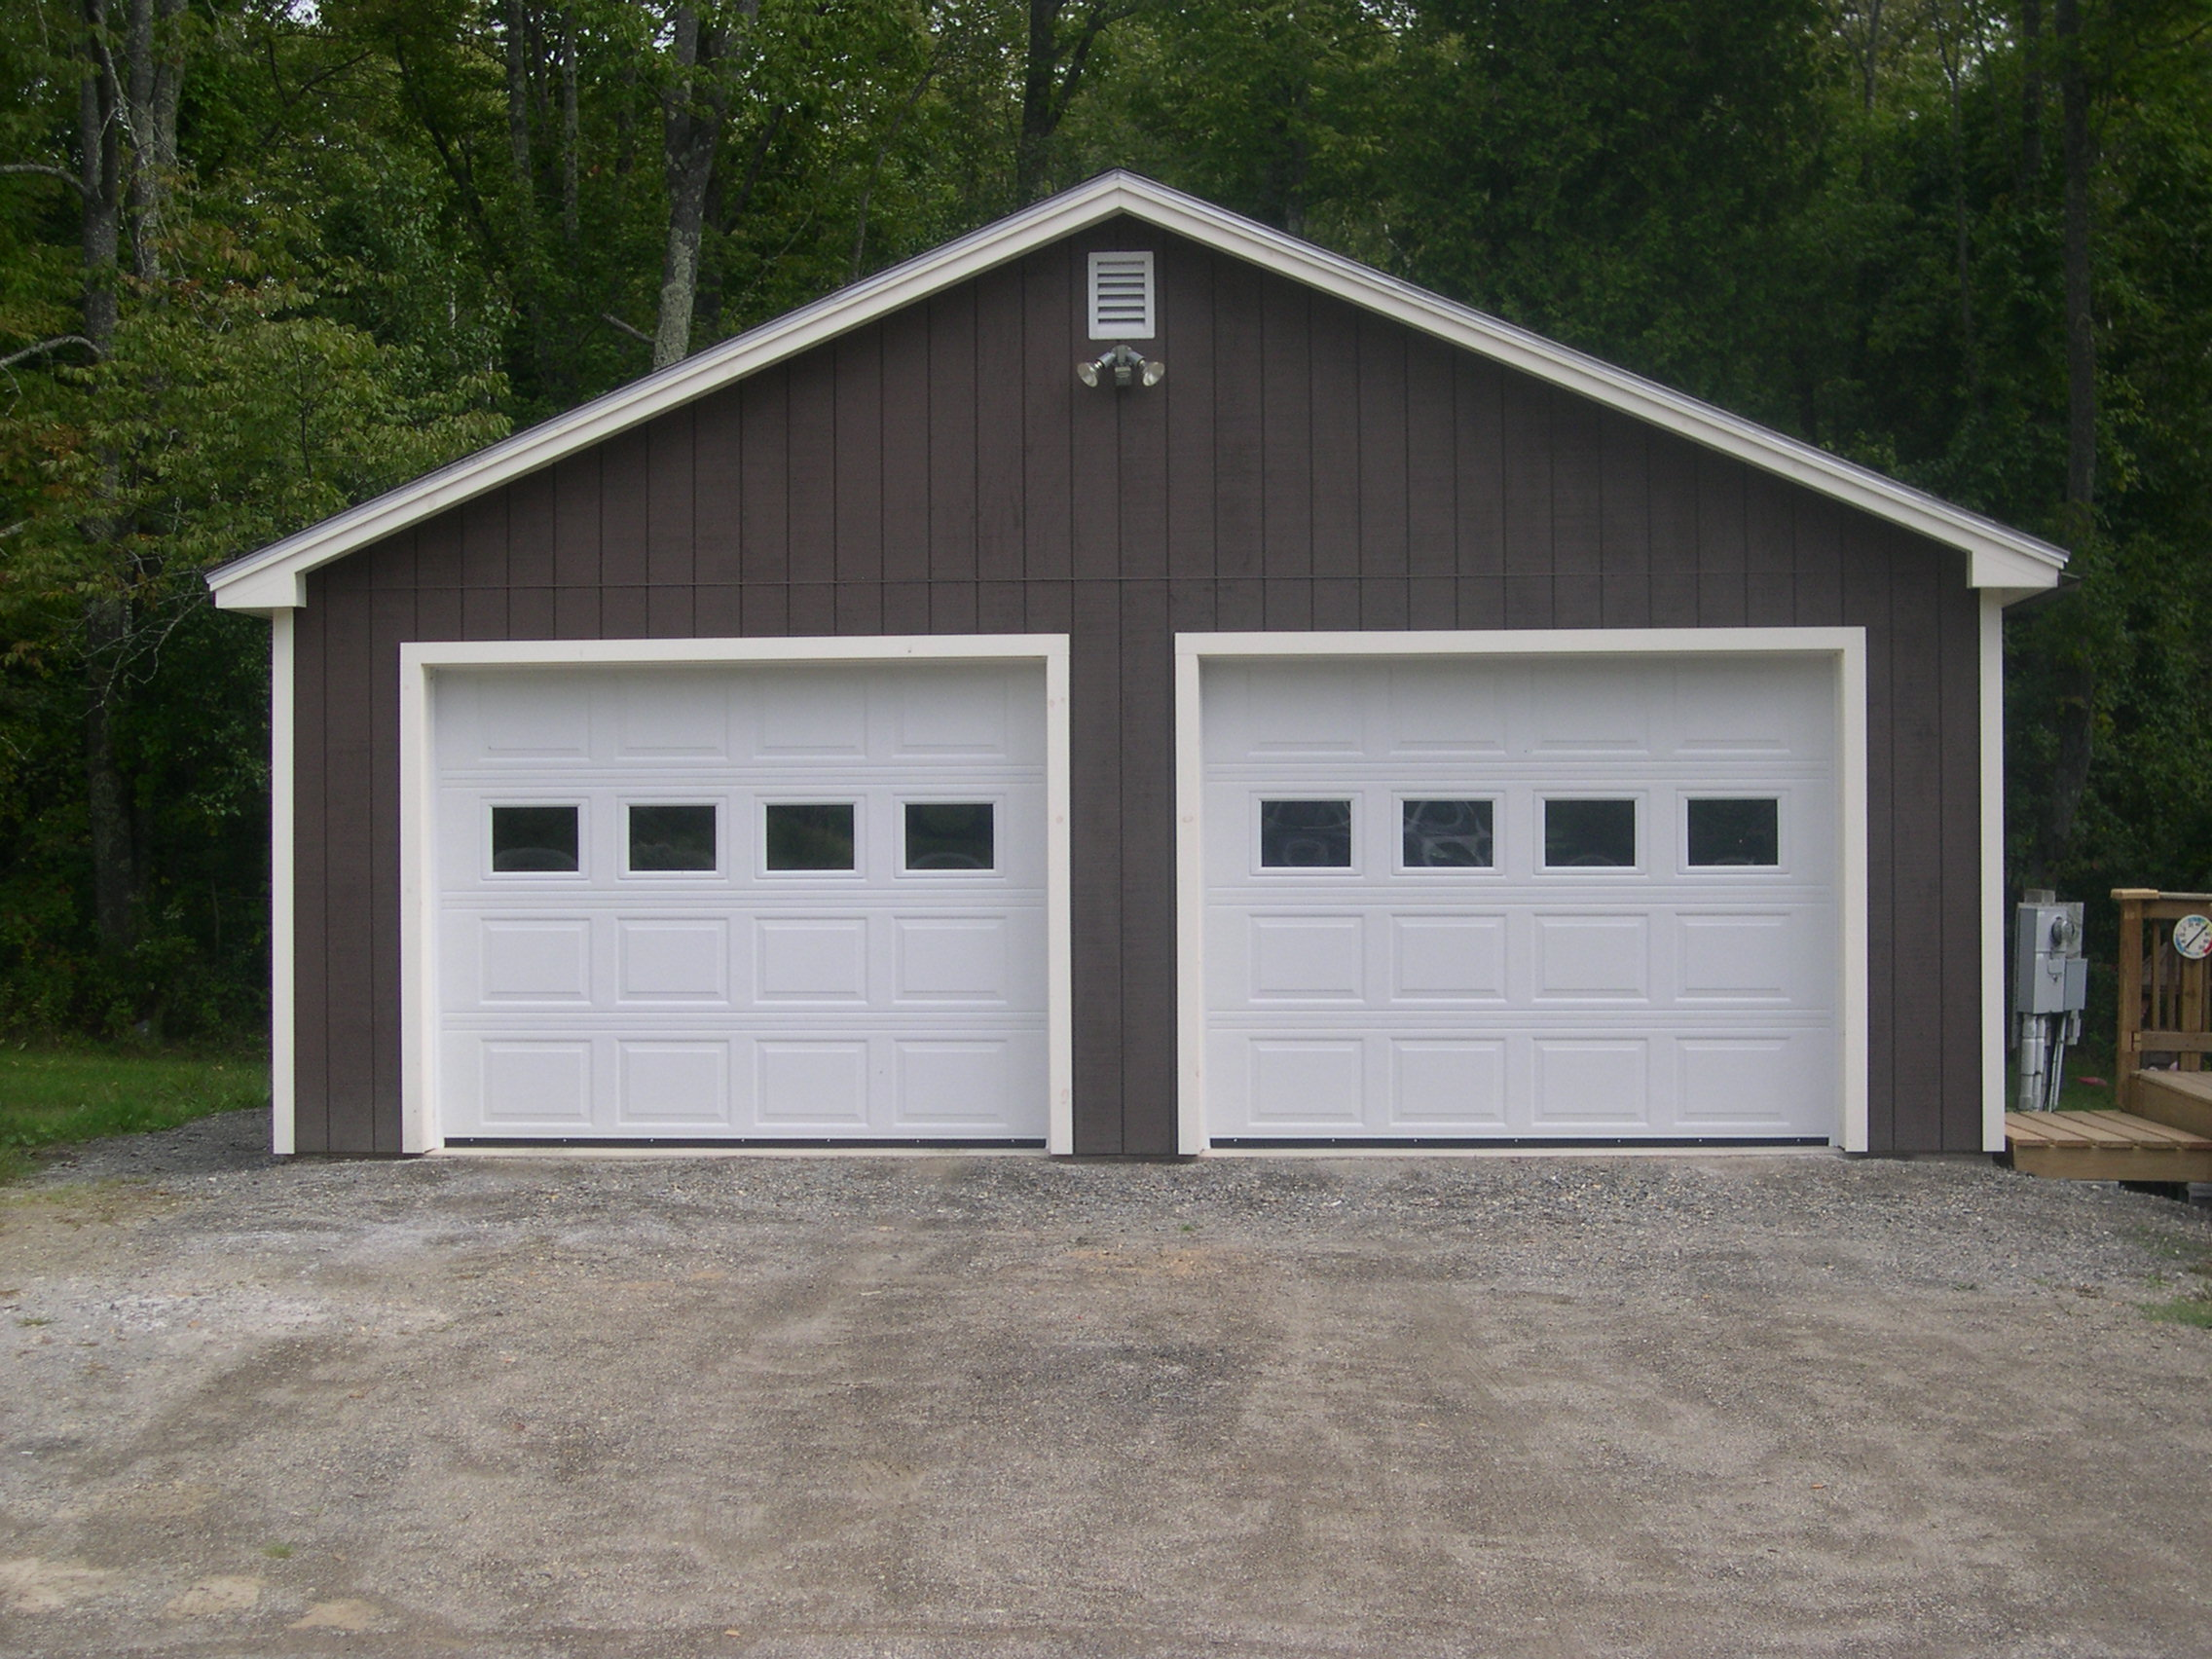 Garage plans 24 x 24 house plans home designs 24 x 28 garage plans free